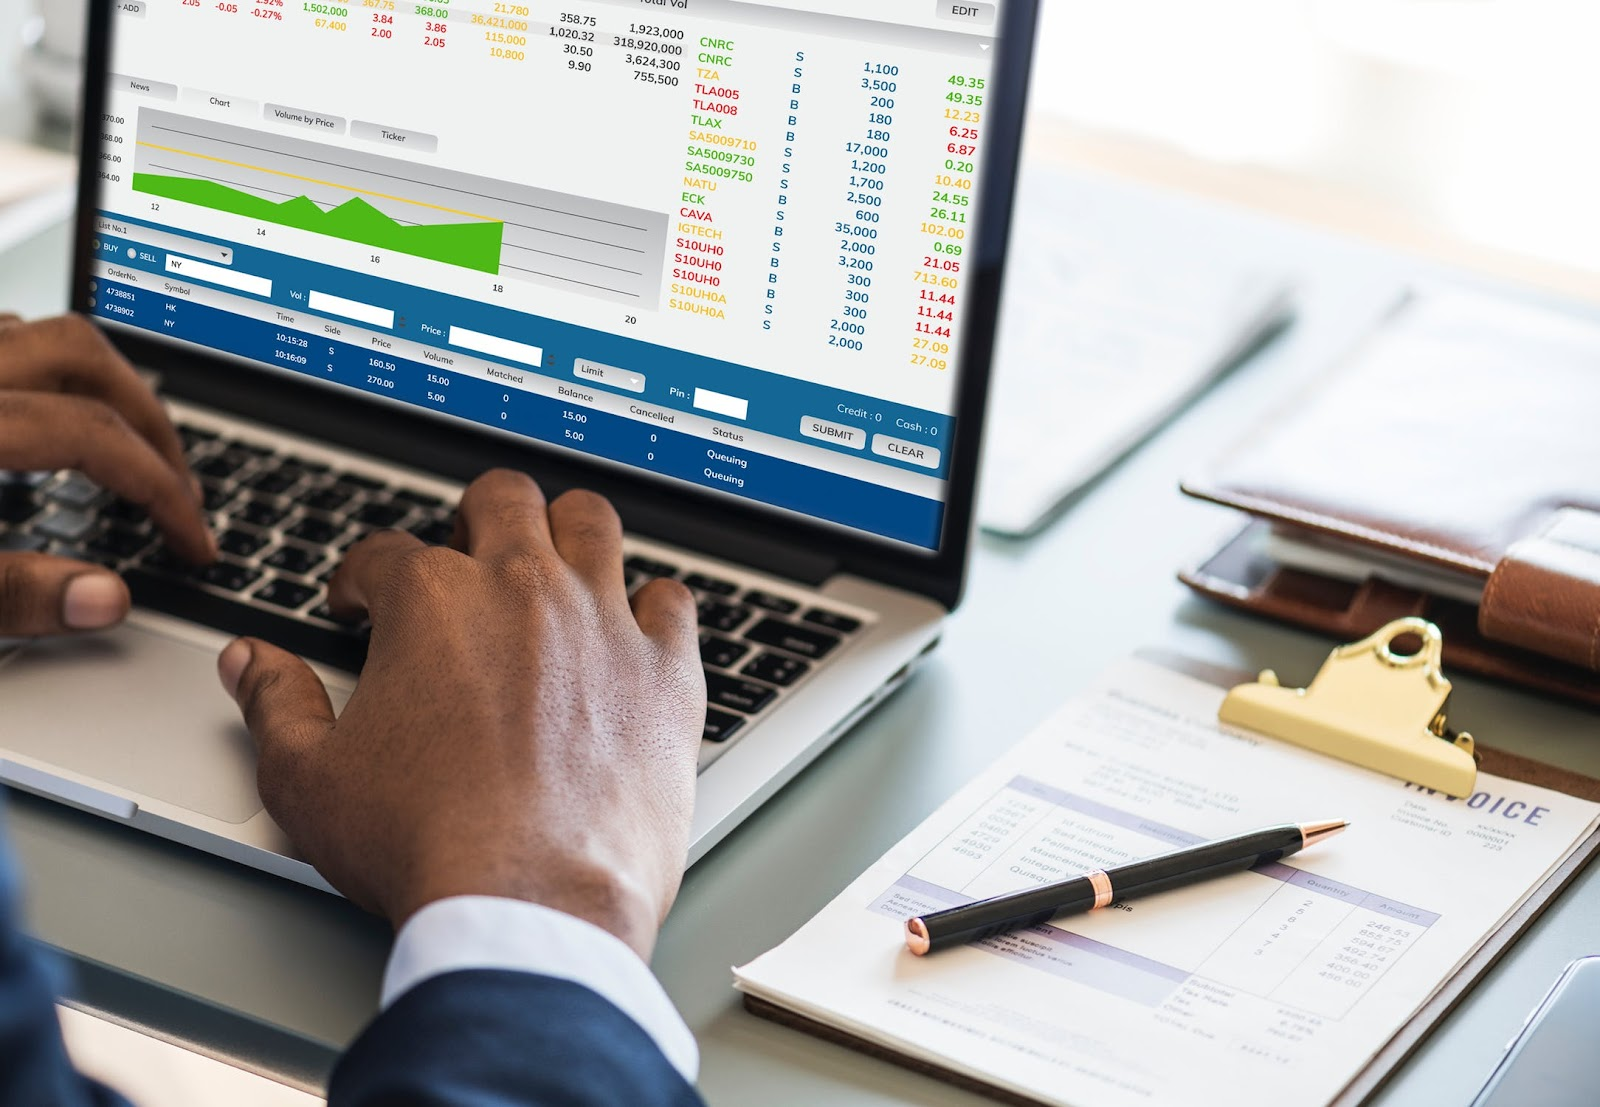 The 5 Best Software Solutions for Business Accounting | Personal Finance Blog - Tips & Advice from UnitedFinances.com